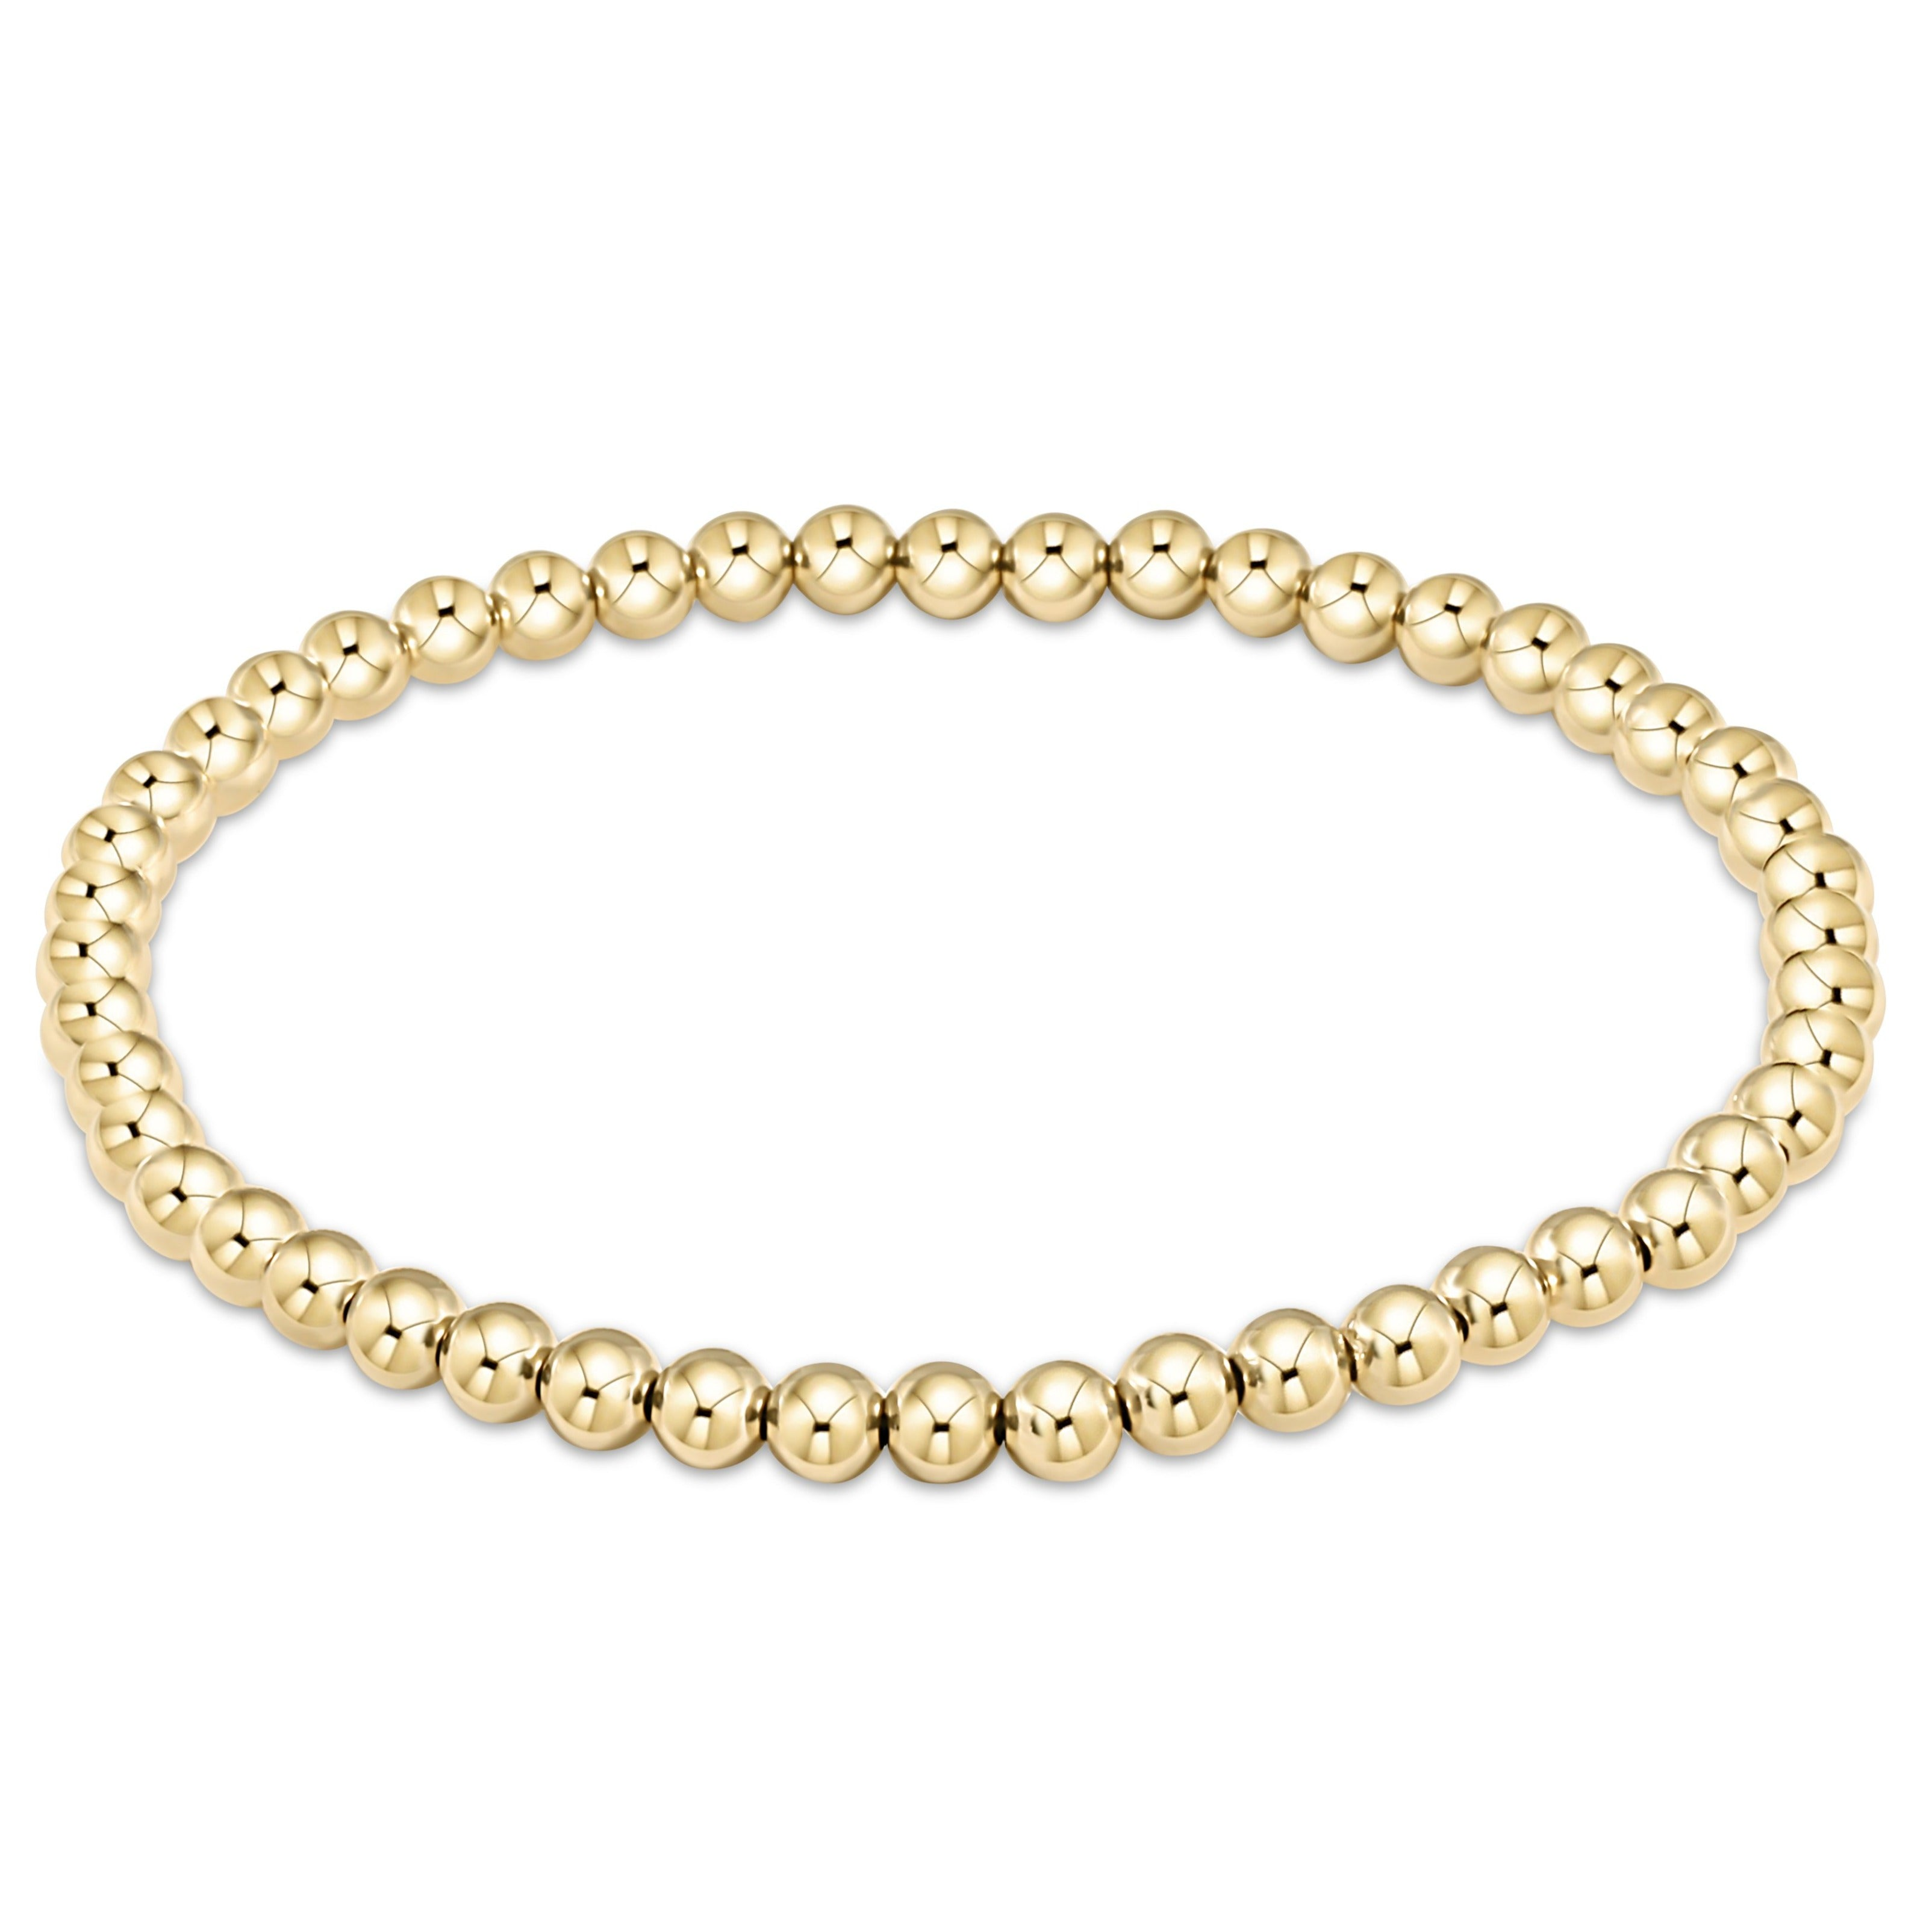 enewton extends - classic gold 4mm bead bracelet